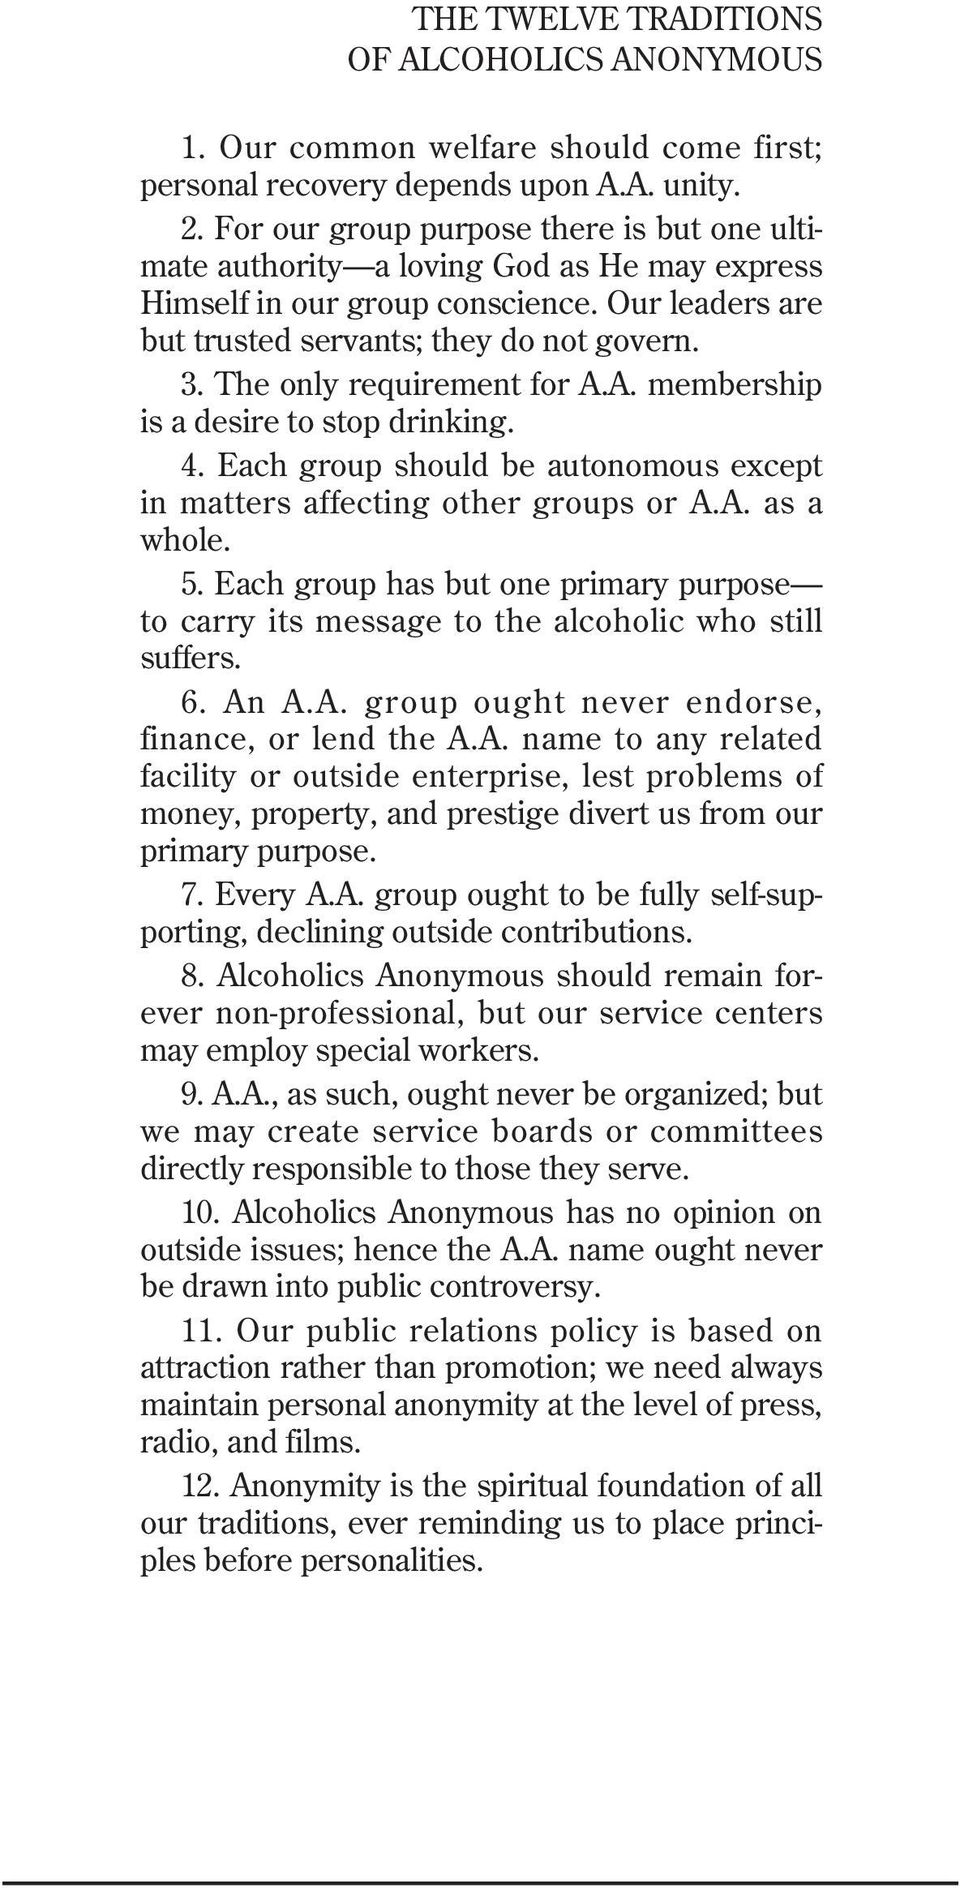 The only requirement for A.A. membership is a desire to stop drinking. 4. Each group should be autonomous except in matters affecting other groups or A.A. as a whole. 5.